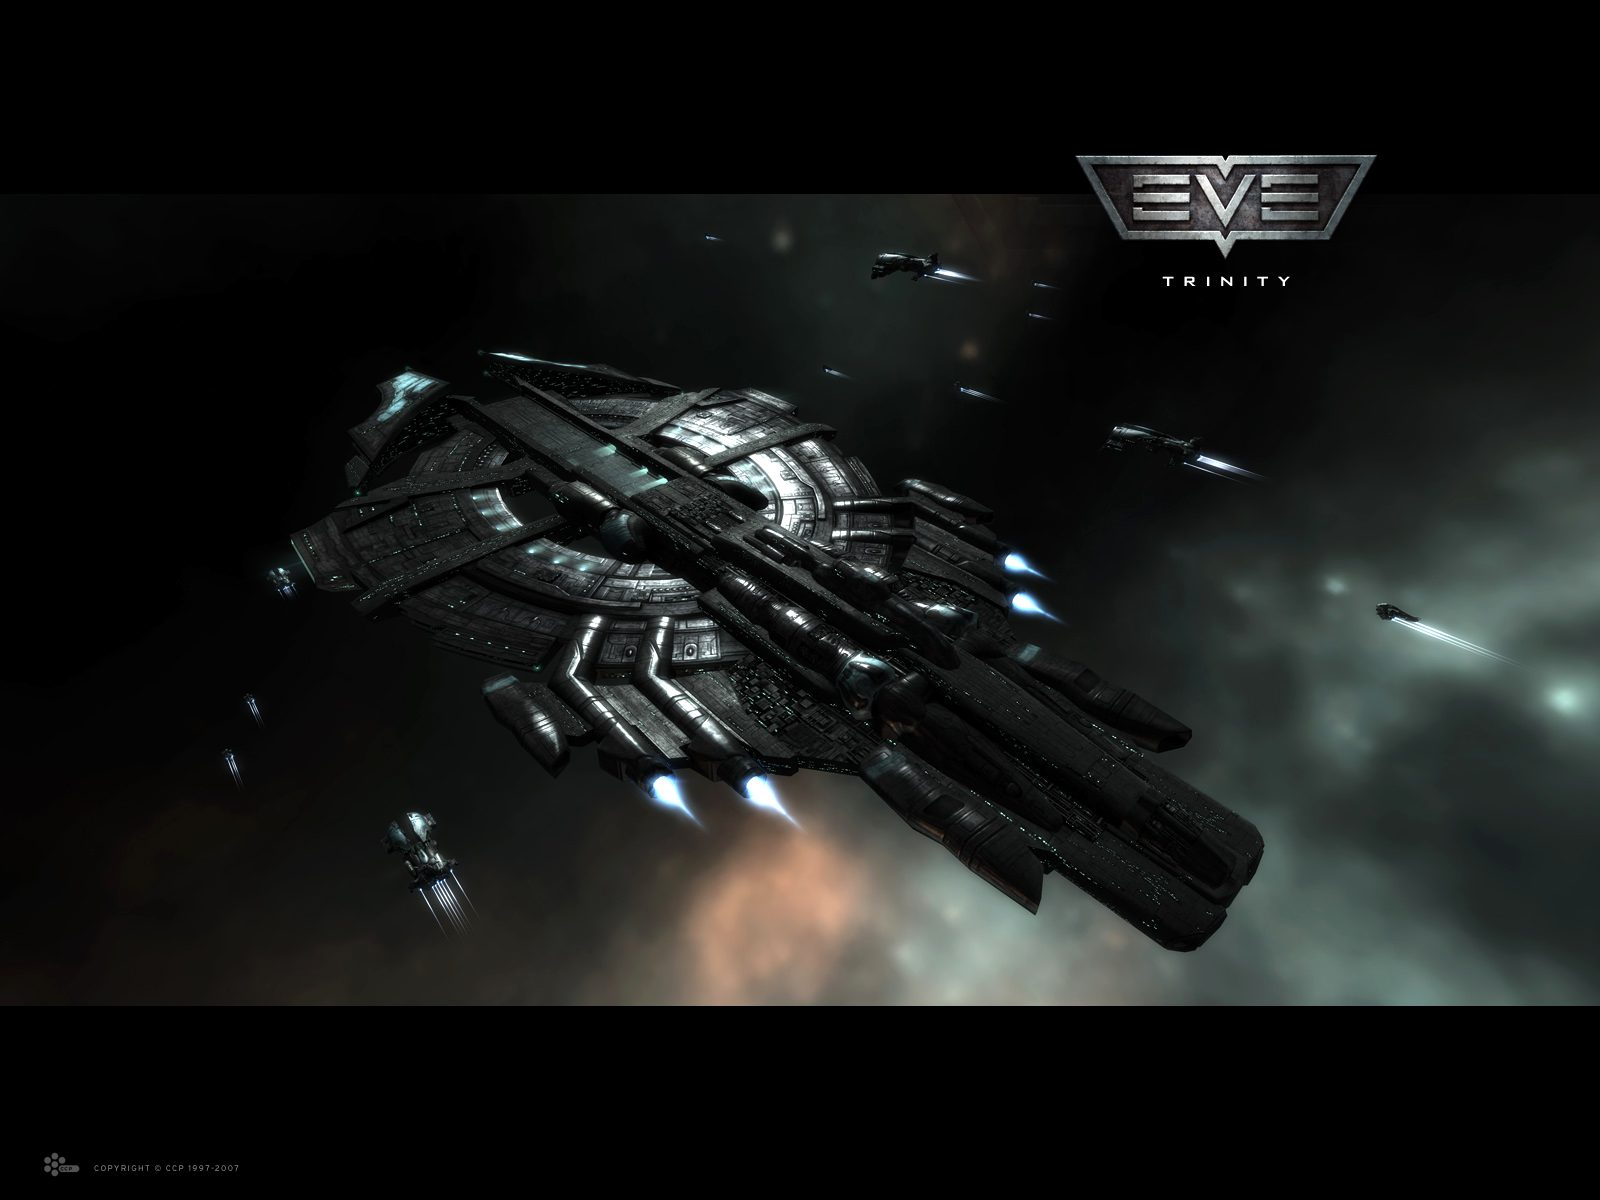 EVE Online Res: 1600x1200 / Size:147kb. Views: 23554